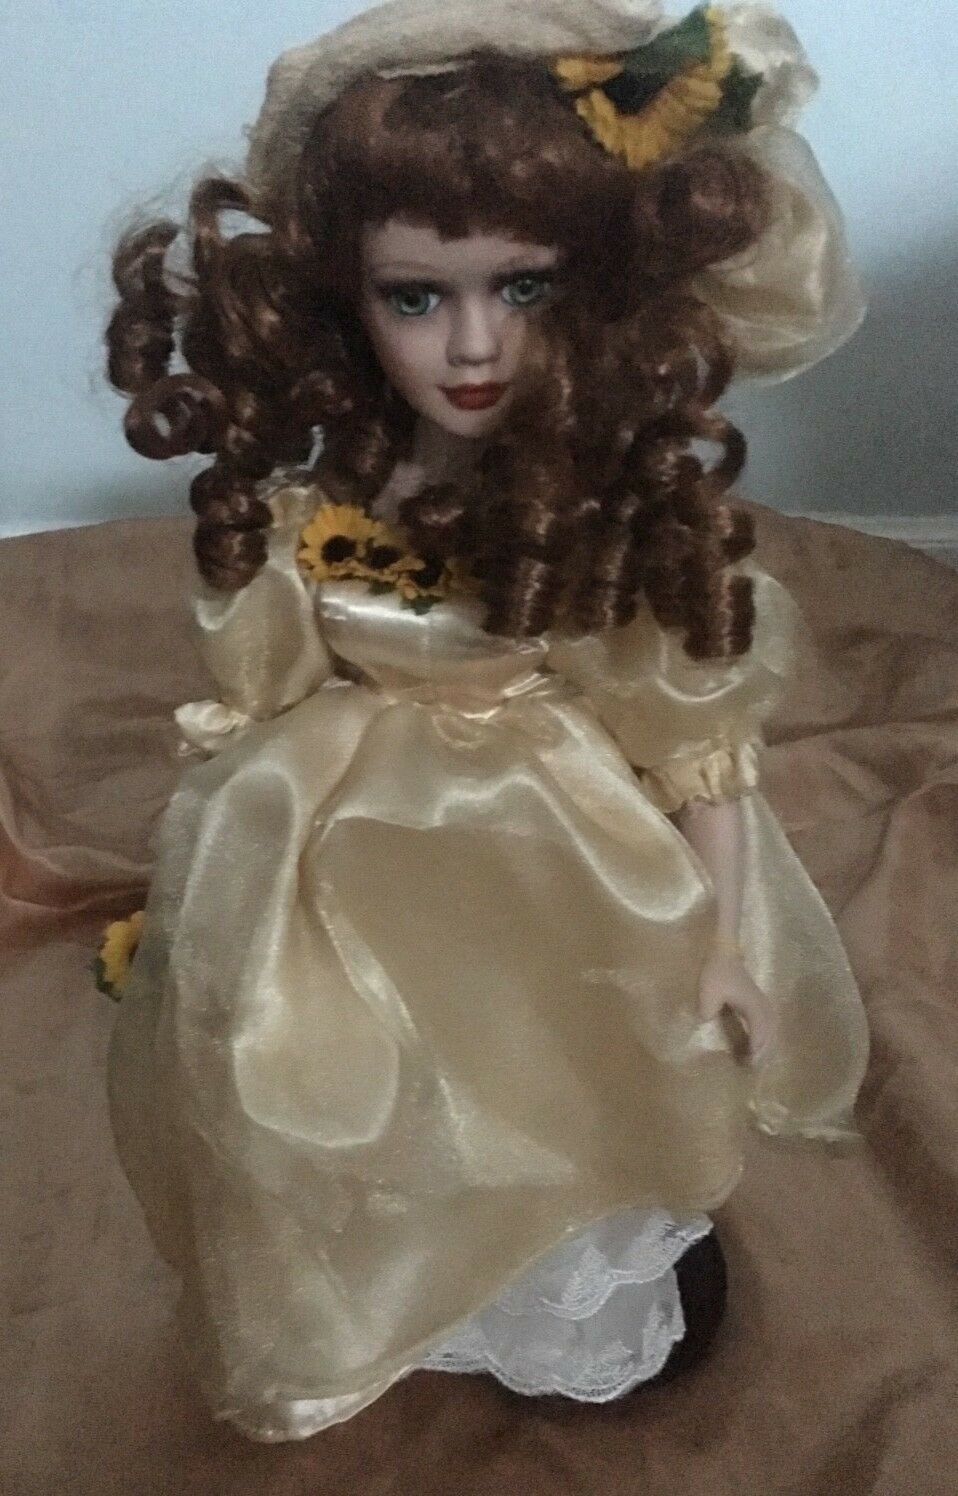 Porcelain doll rojo Hair amarillo dress Sunflowers in hand